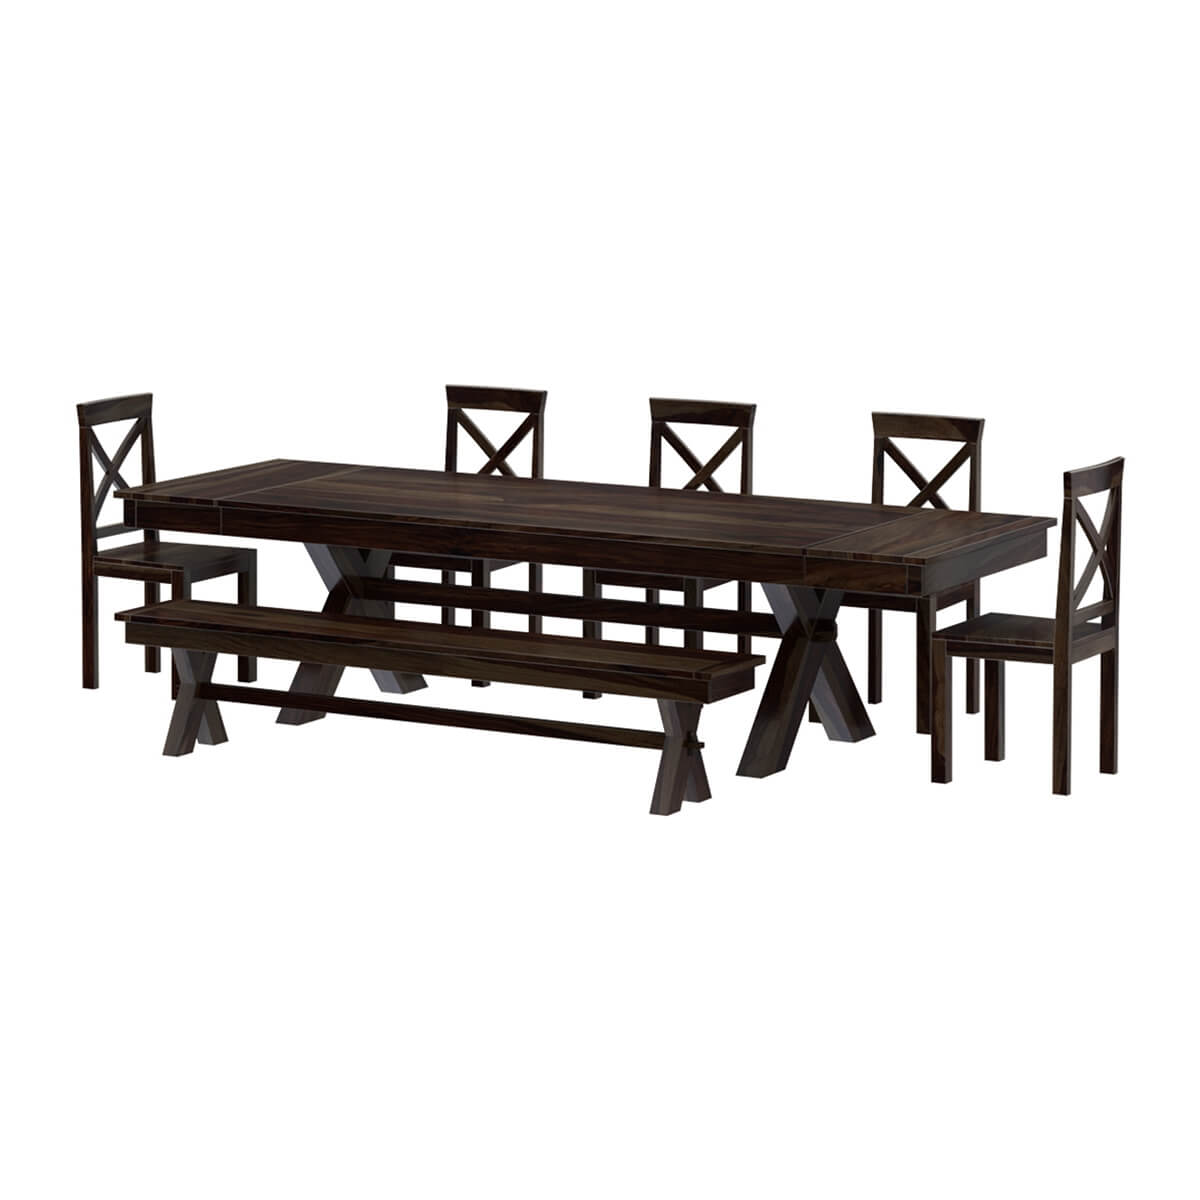 Westside Indoor Picnic Style Dining Table Bench Set with  : 42982 from sierralivingconcepts.com size 1200 x 1200 jpeg 85kB